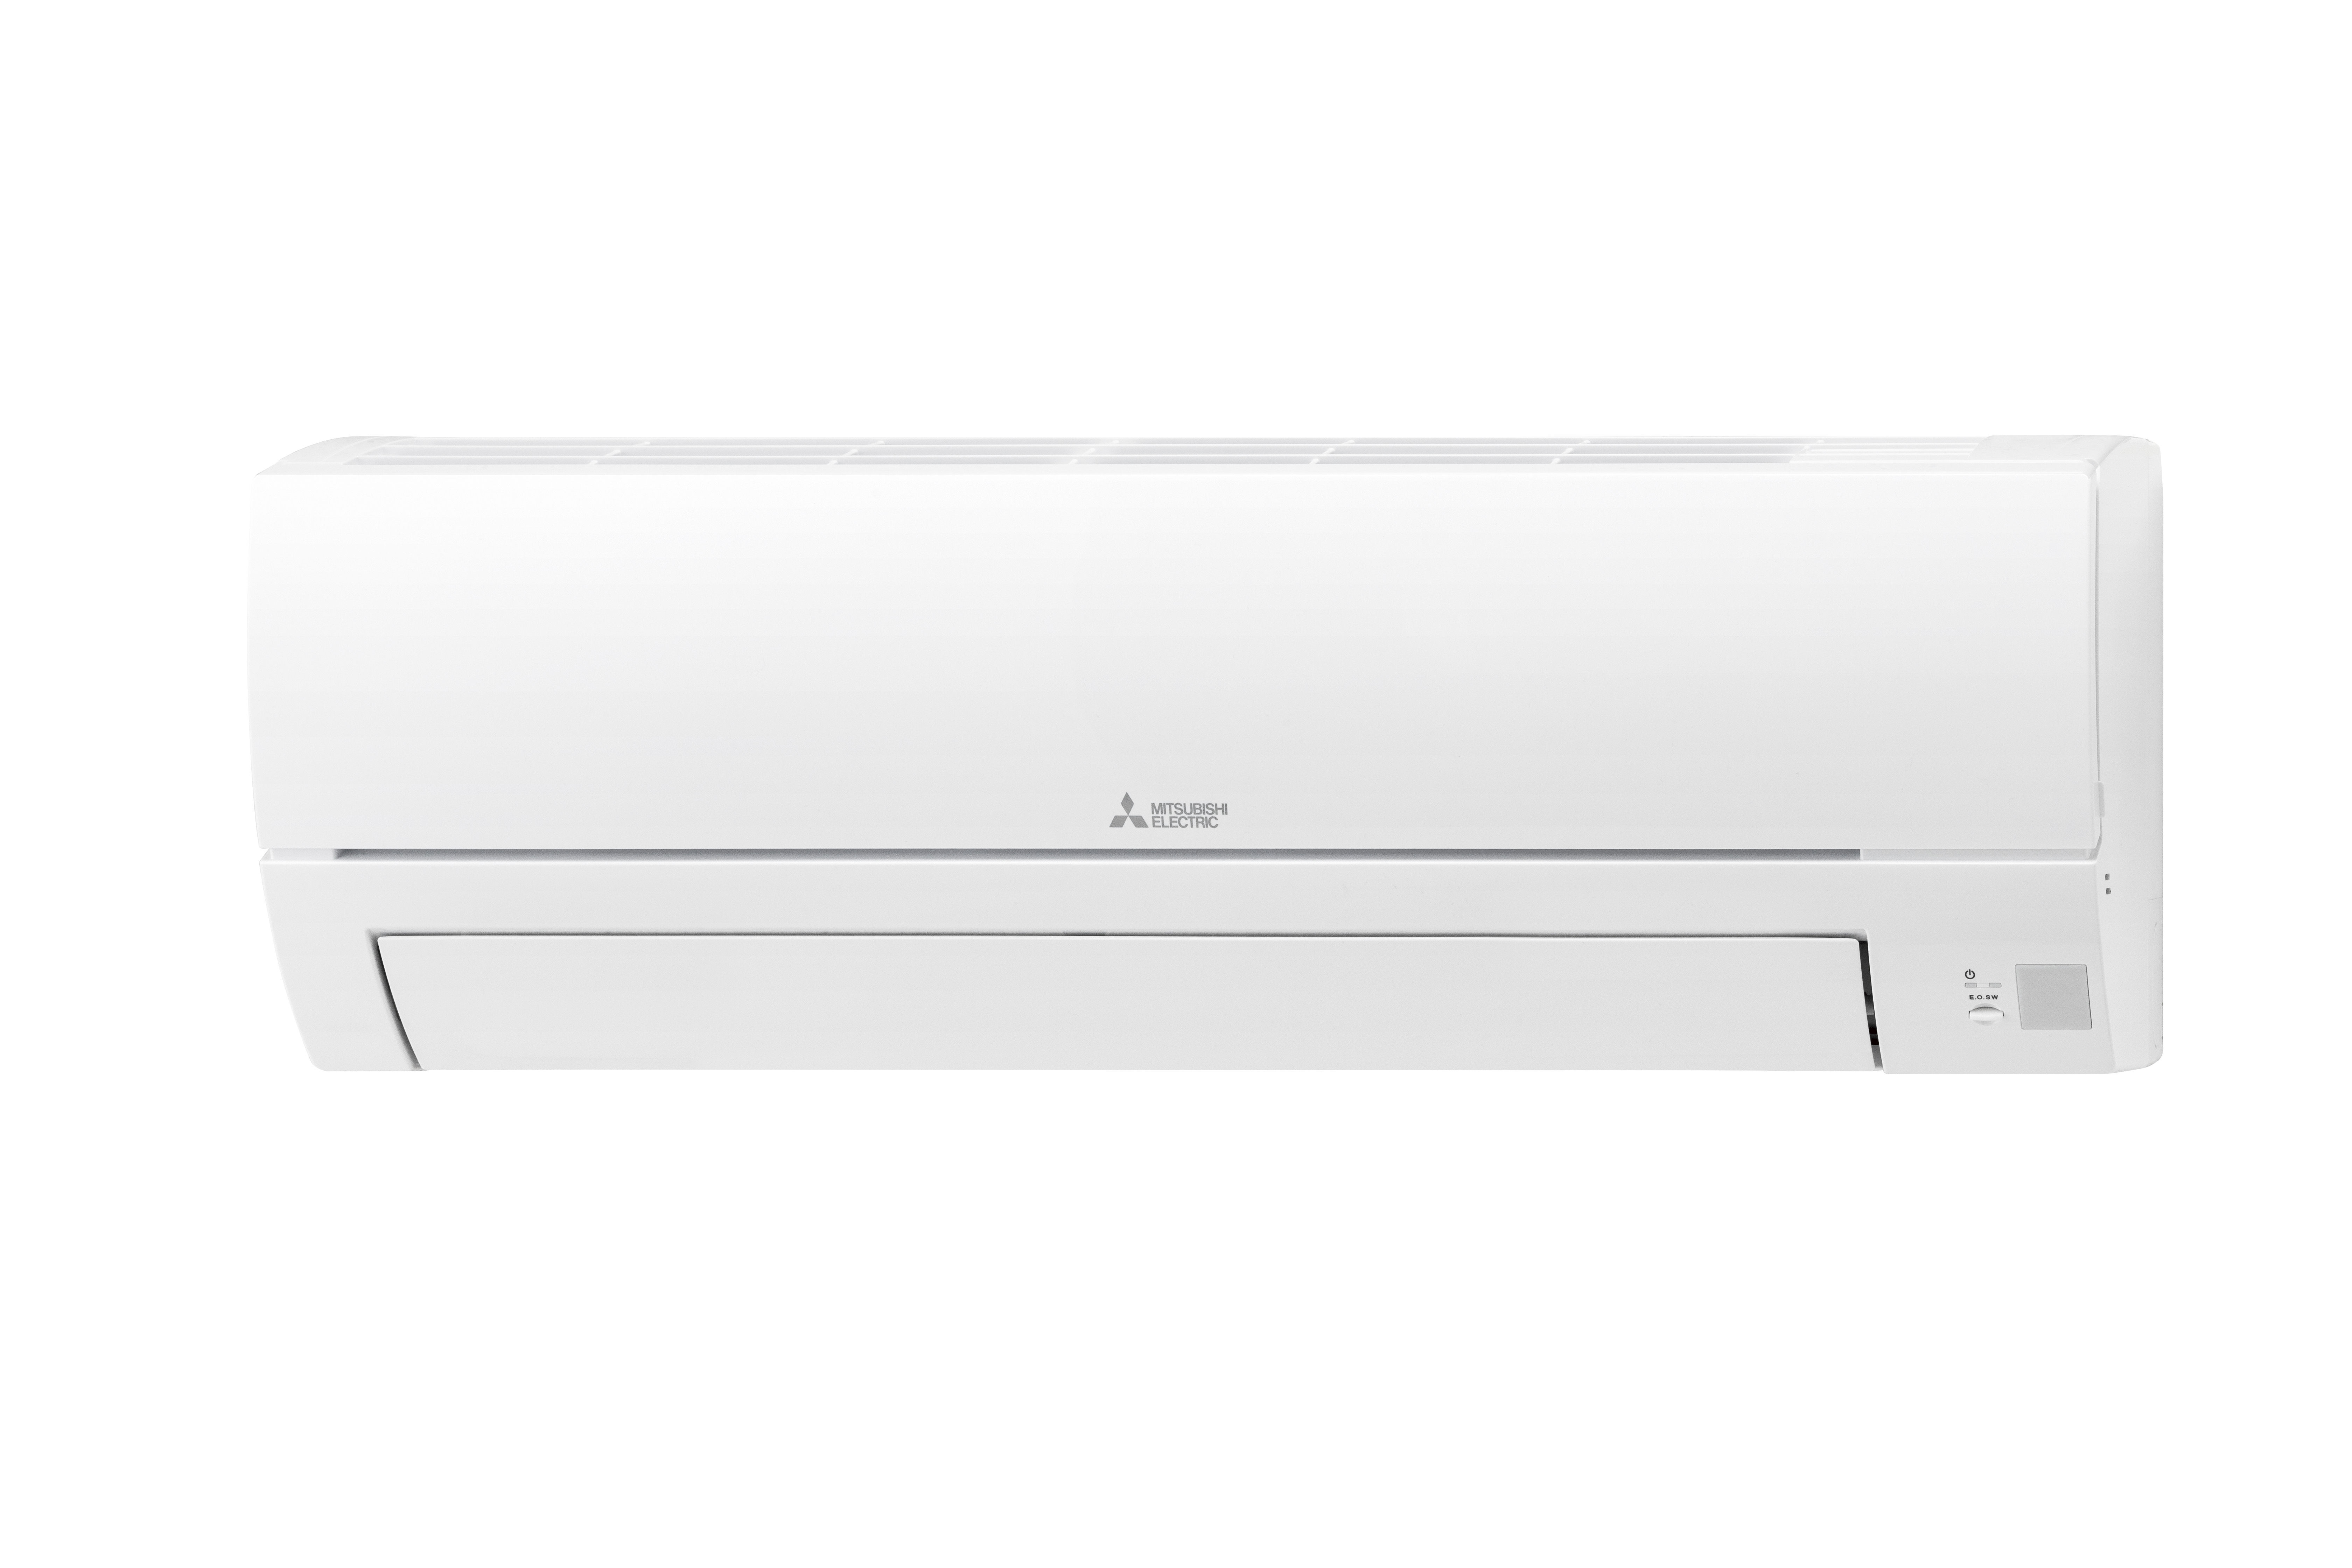 Mitsubishi electric, M Series, R32, wall-mountned